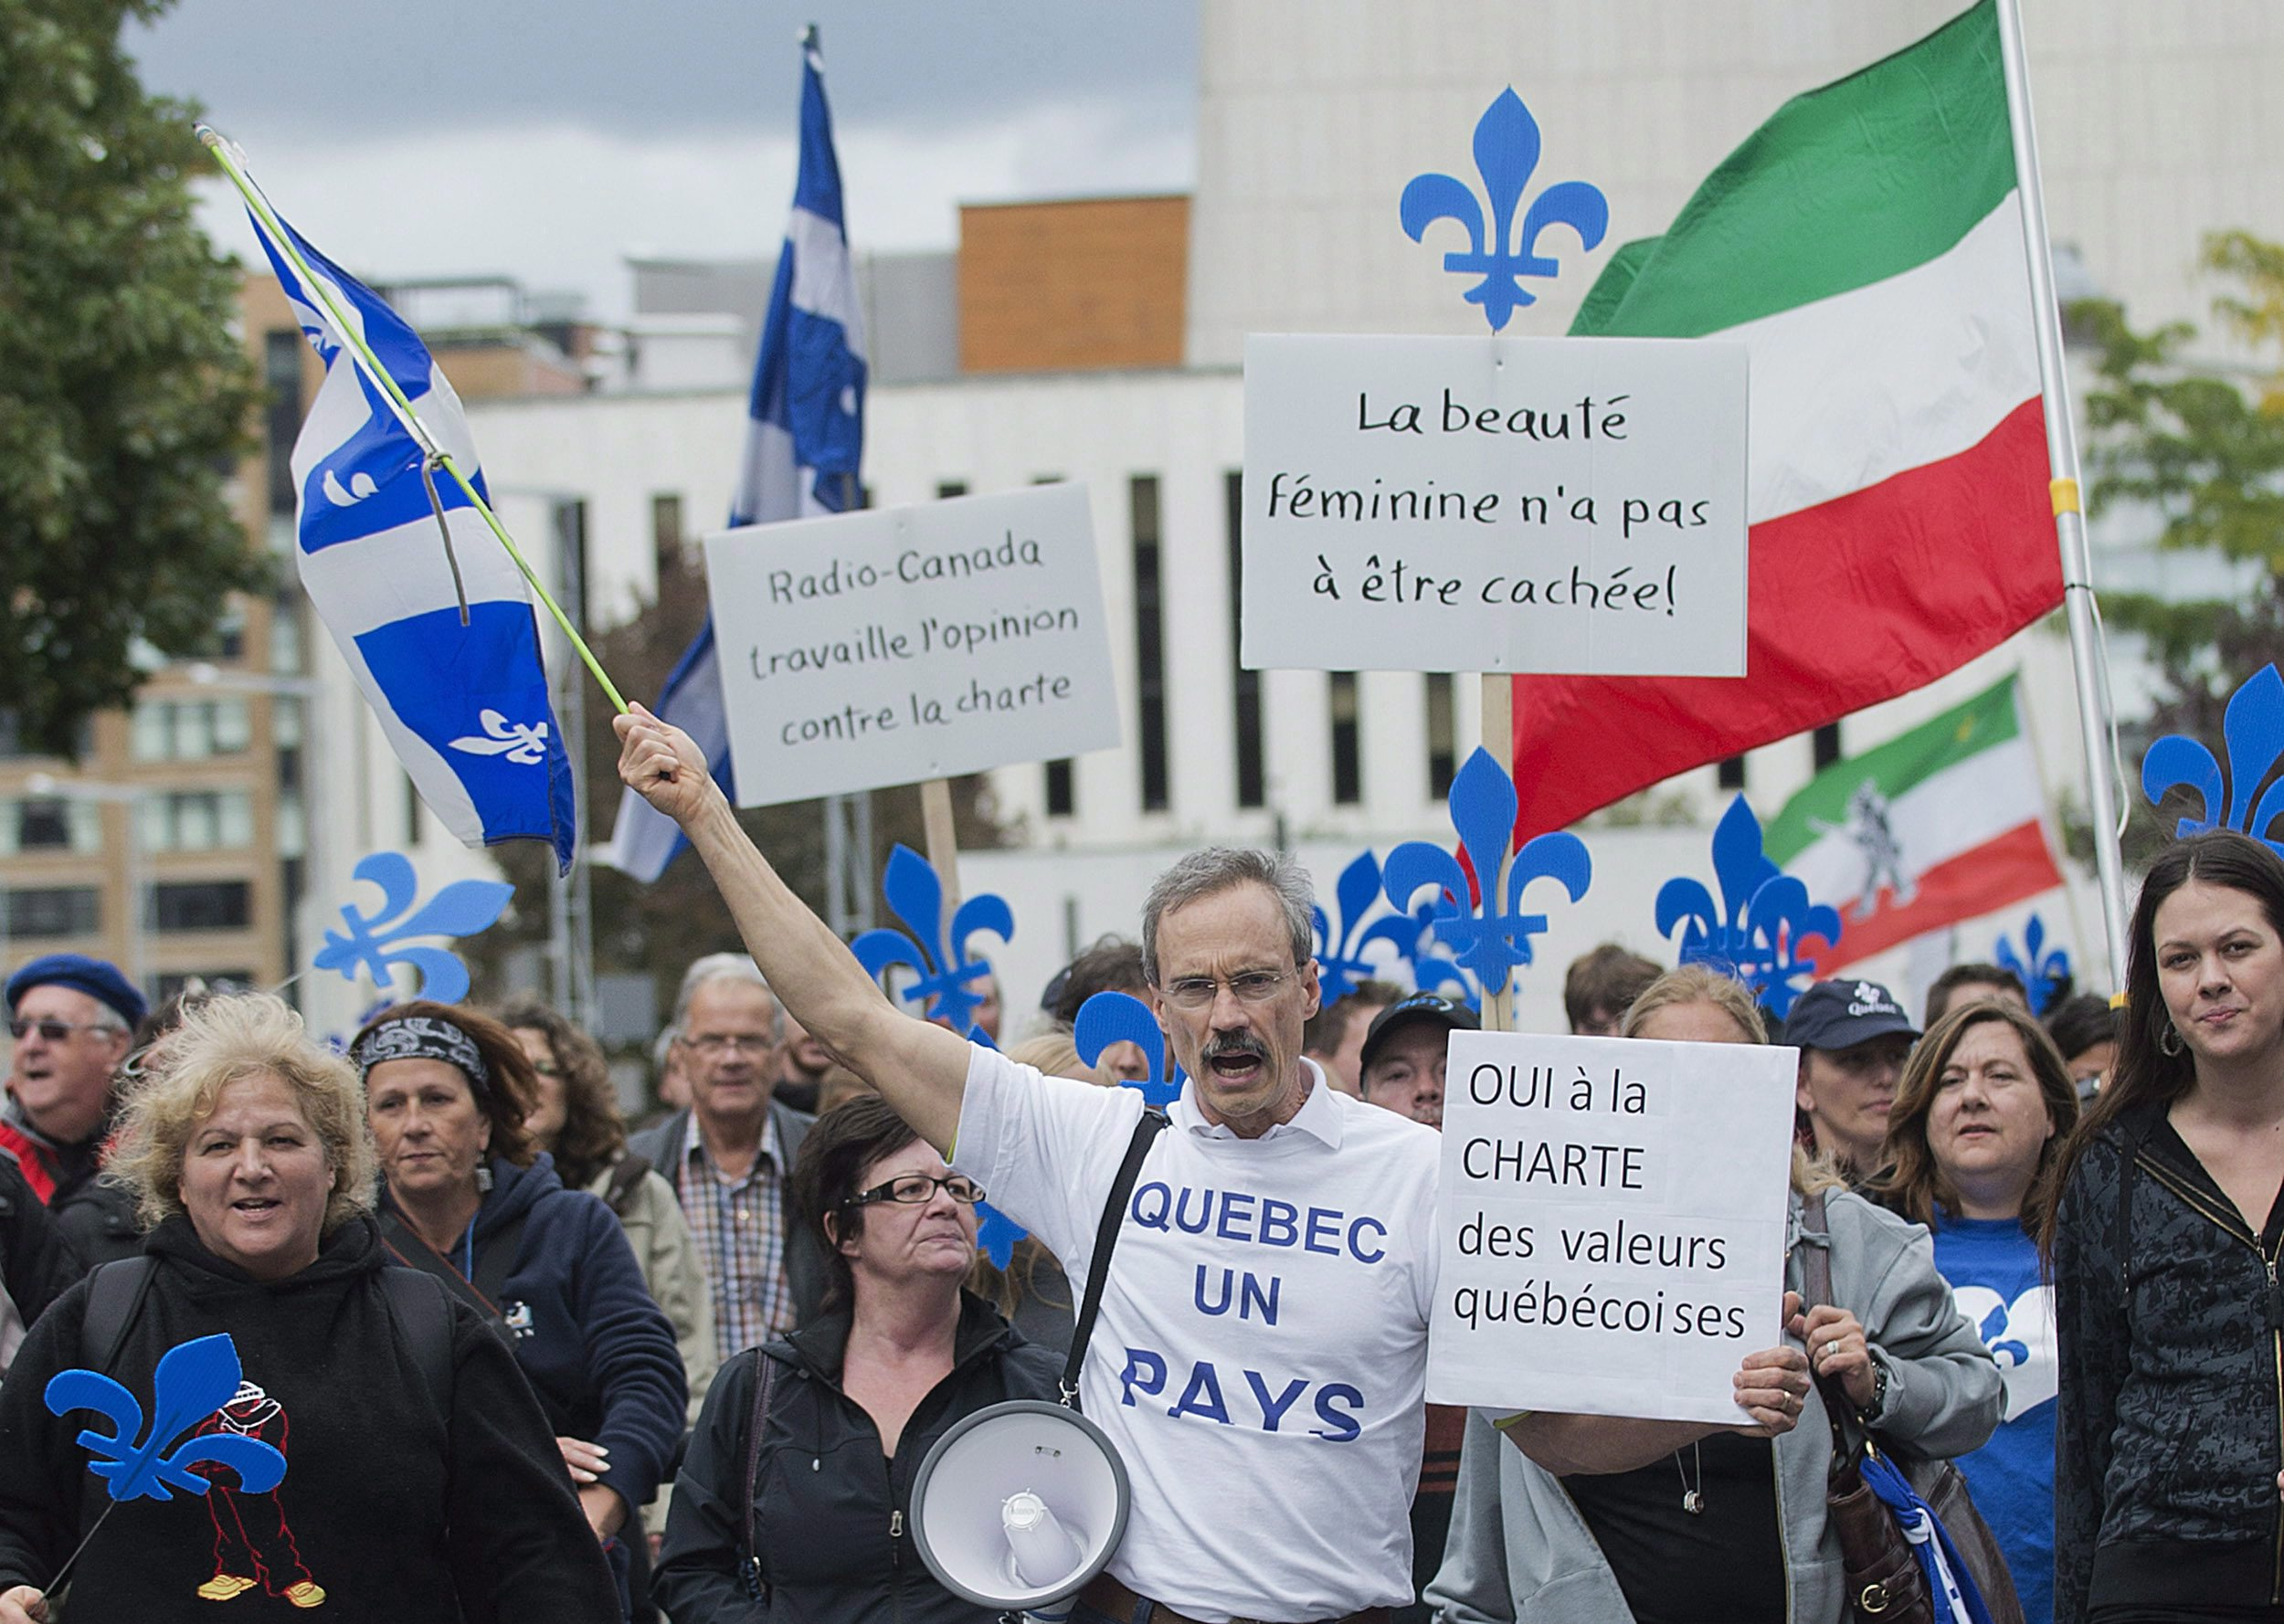 quebec un pays nationalist